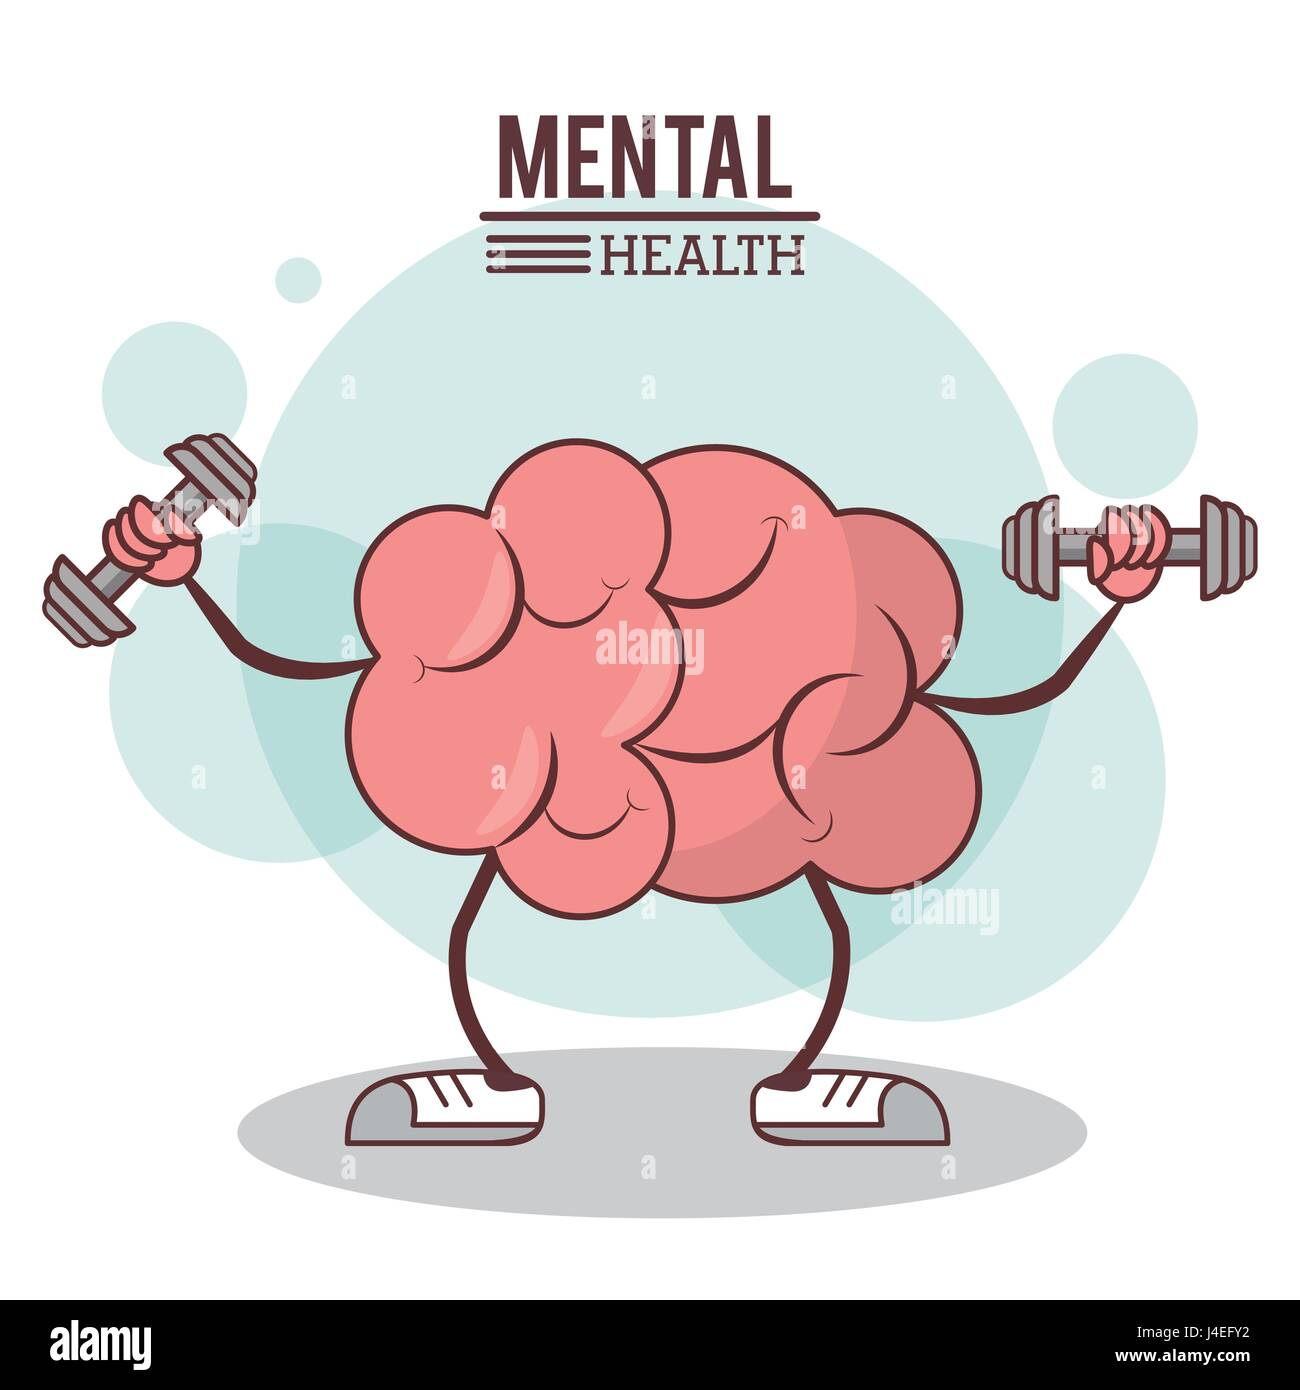 mental health concept. brain training exercise healthy image - Stock Image